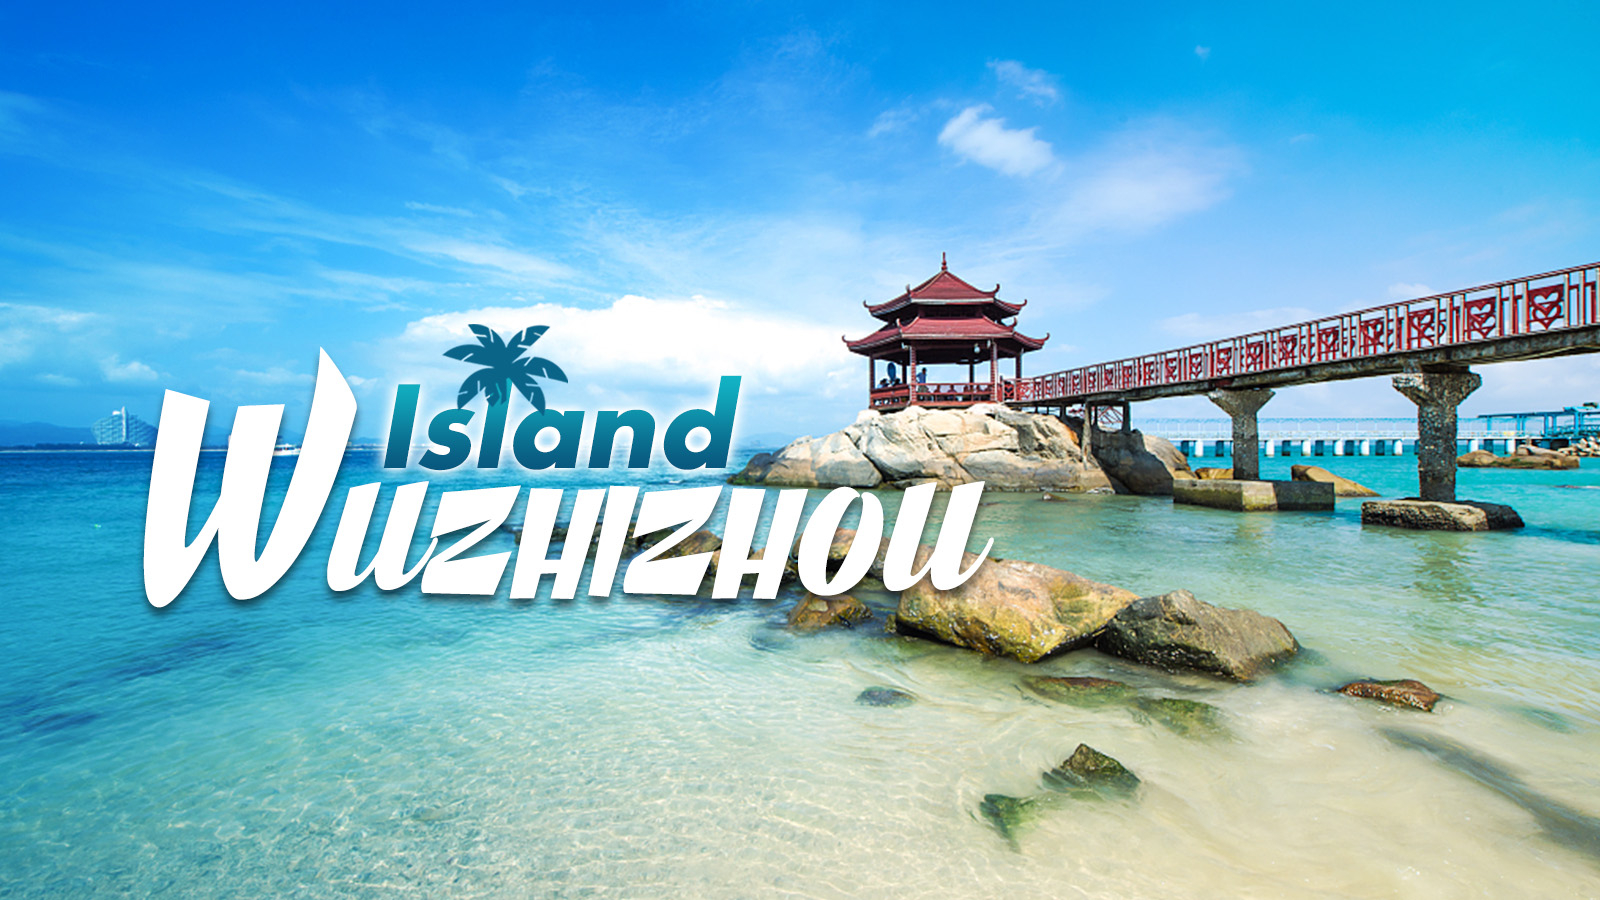 One of Hainan's best filming locations - Wuzhizhou Island